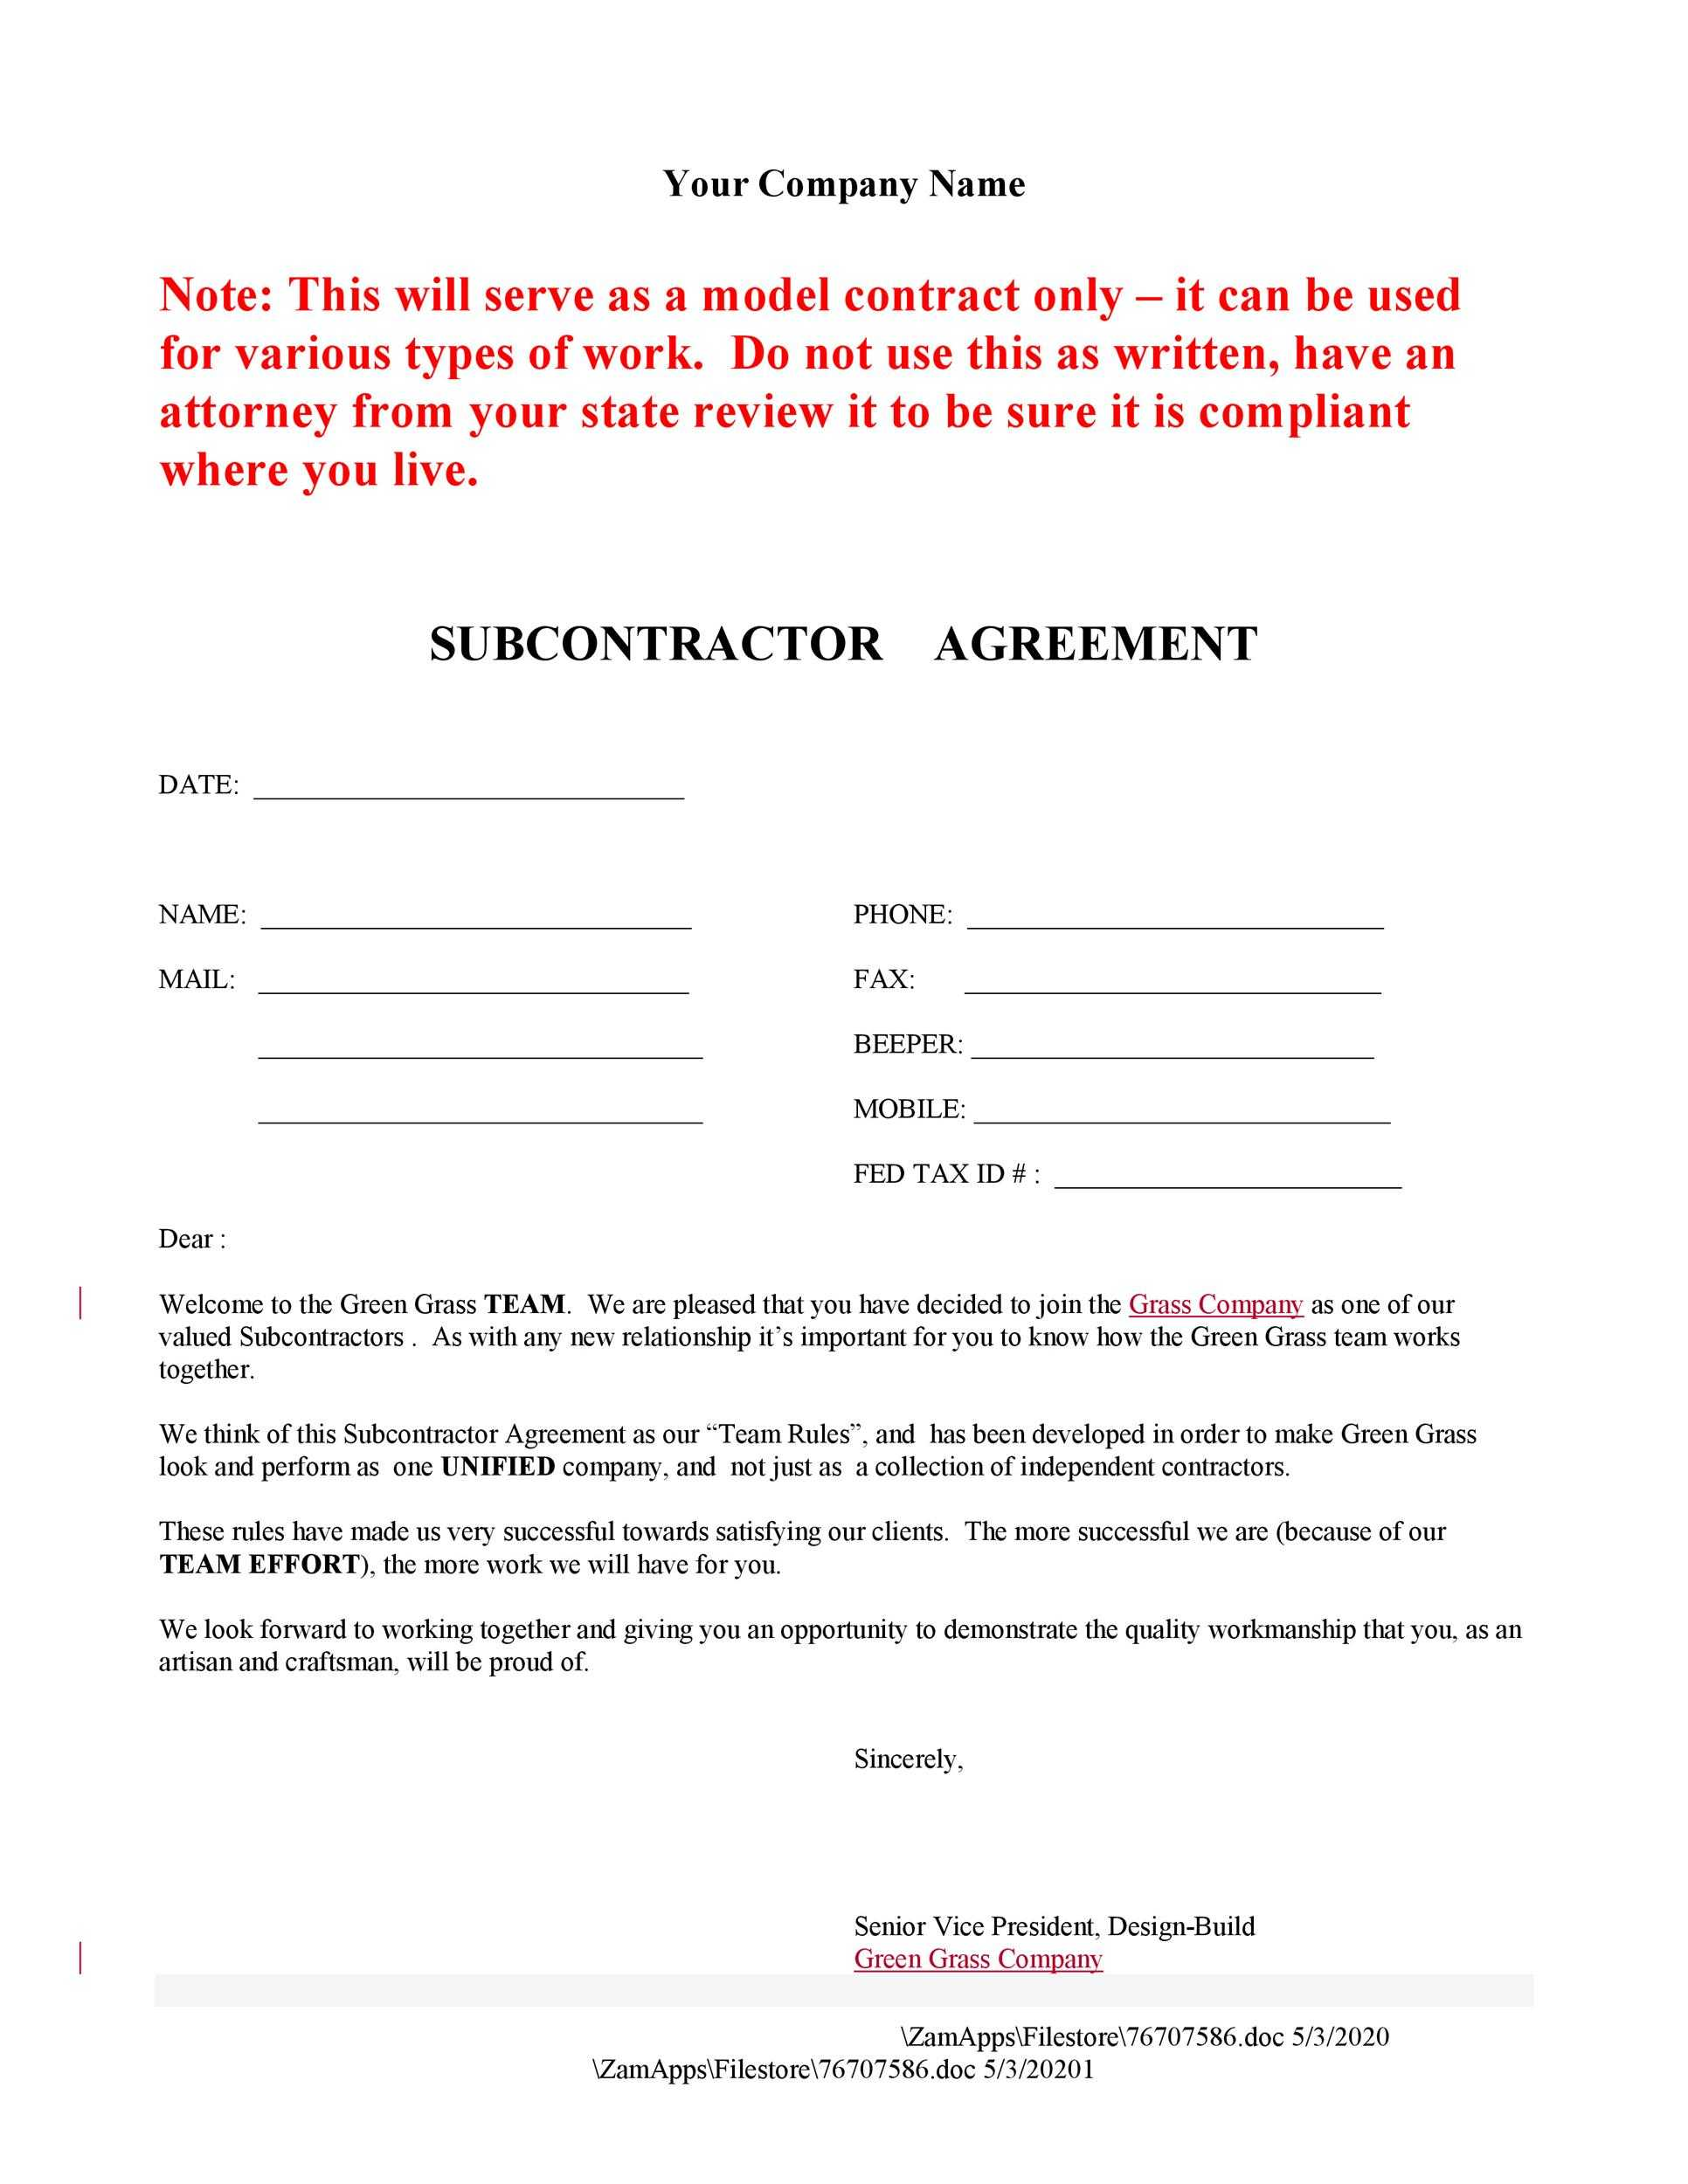 Subcontractor Agreements By State